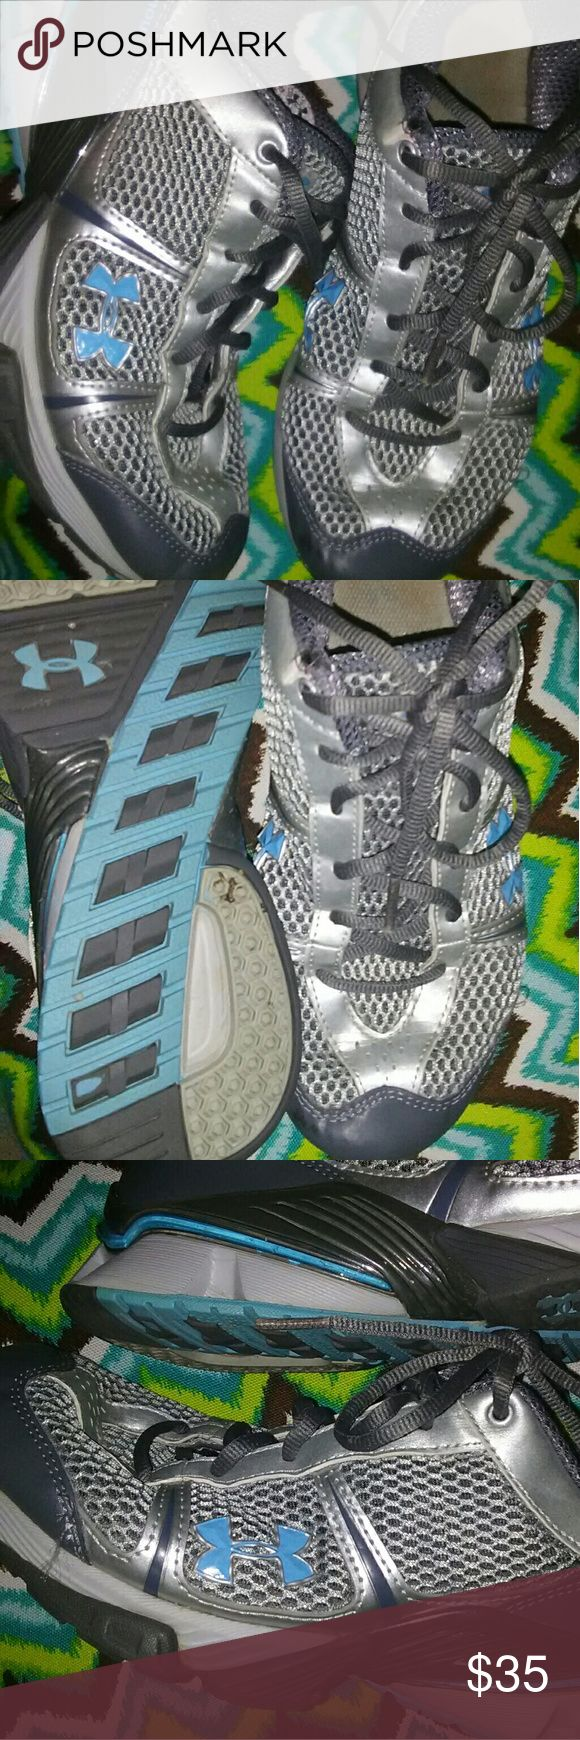 Under Armour Running Shoes Good used Condition Can fit a womens 7.5 Very comfortable Turquoise, silver, and charcoal gray in color One small spot on the toe of the left shoe. It's not noticeable when wearing ( close up in 5th pic) Under Armour Shoes Sneakers